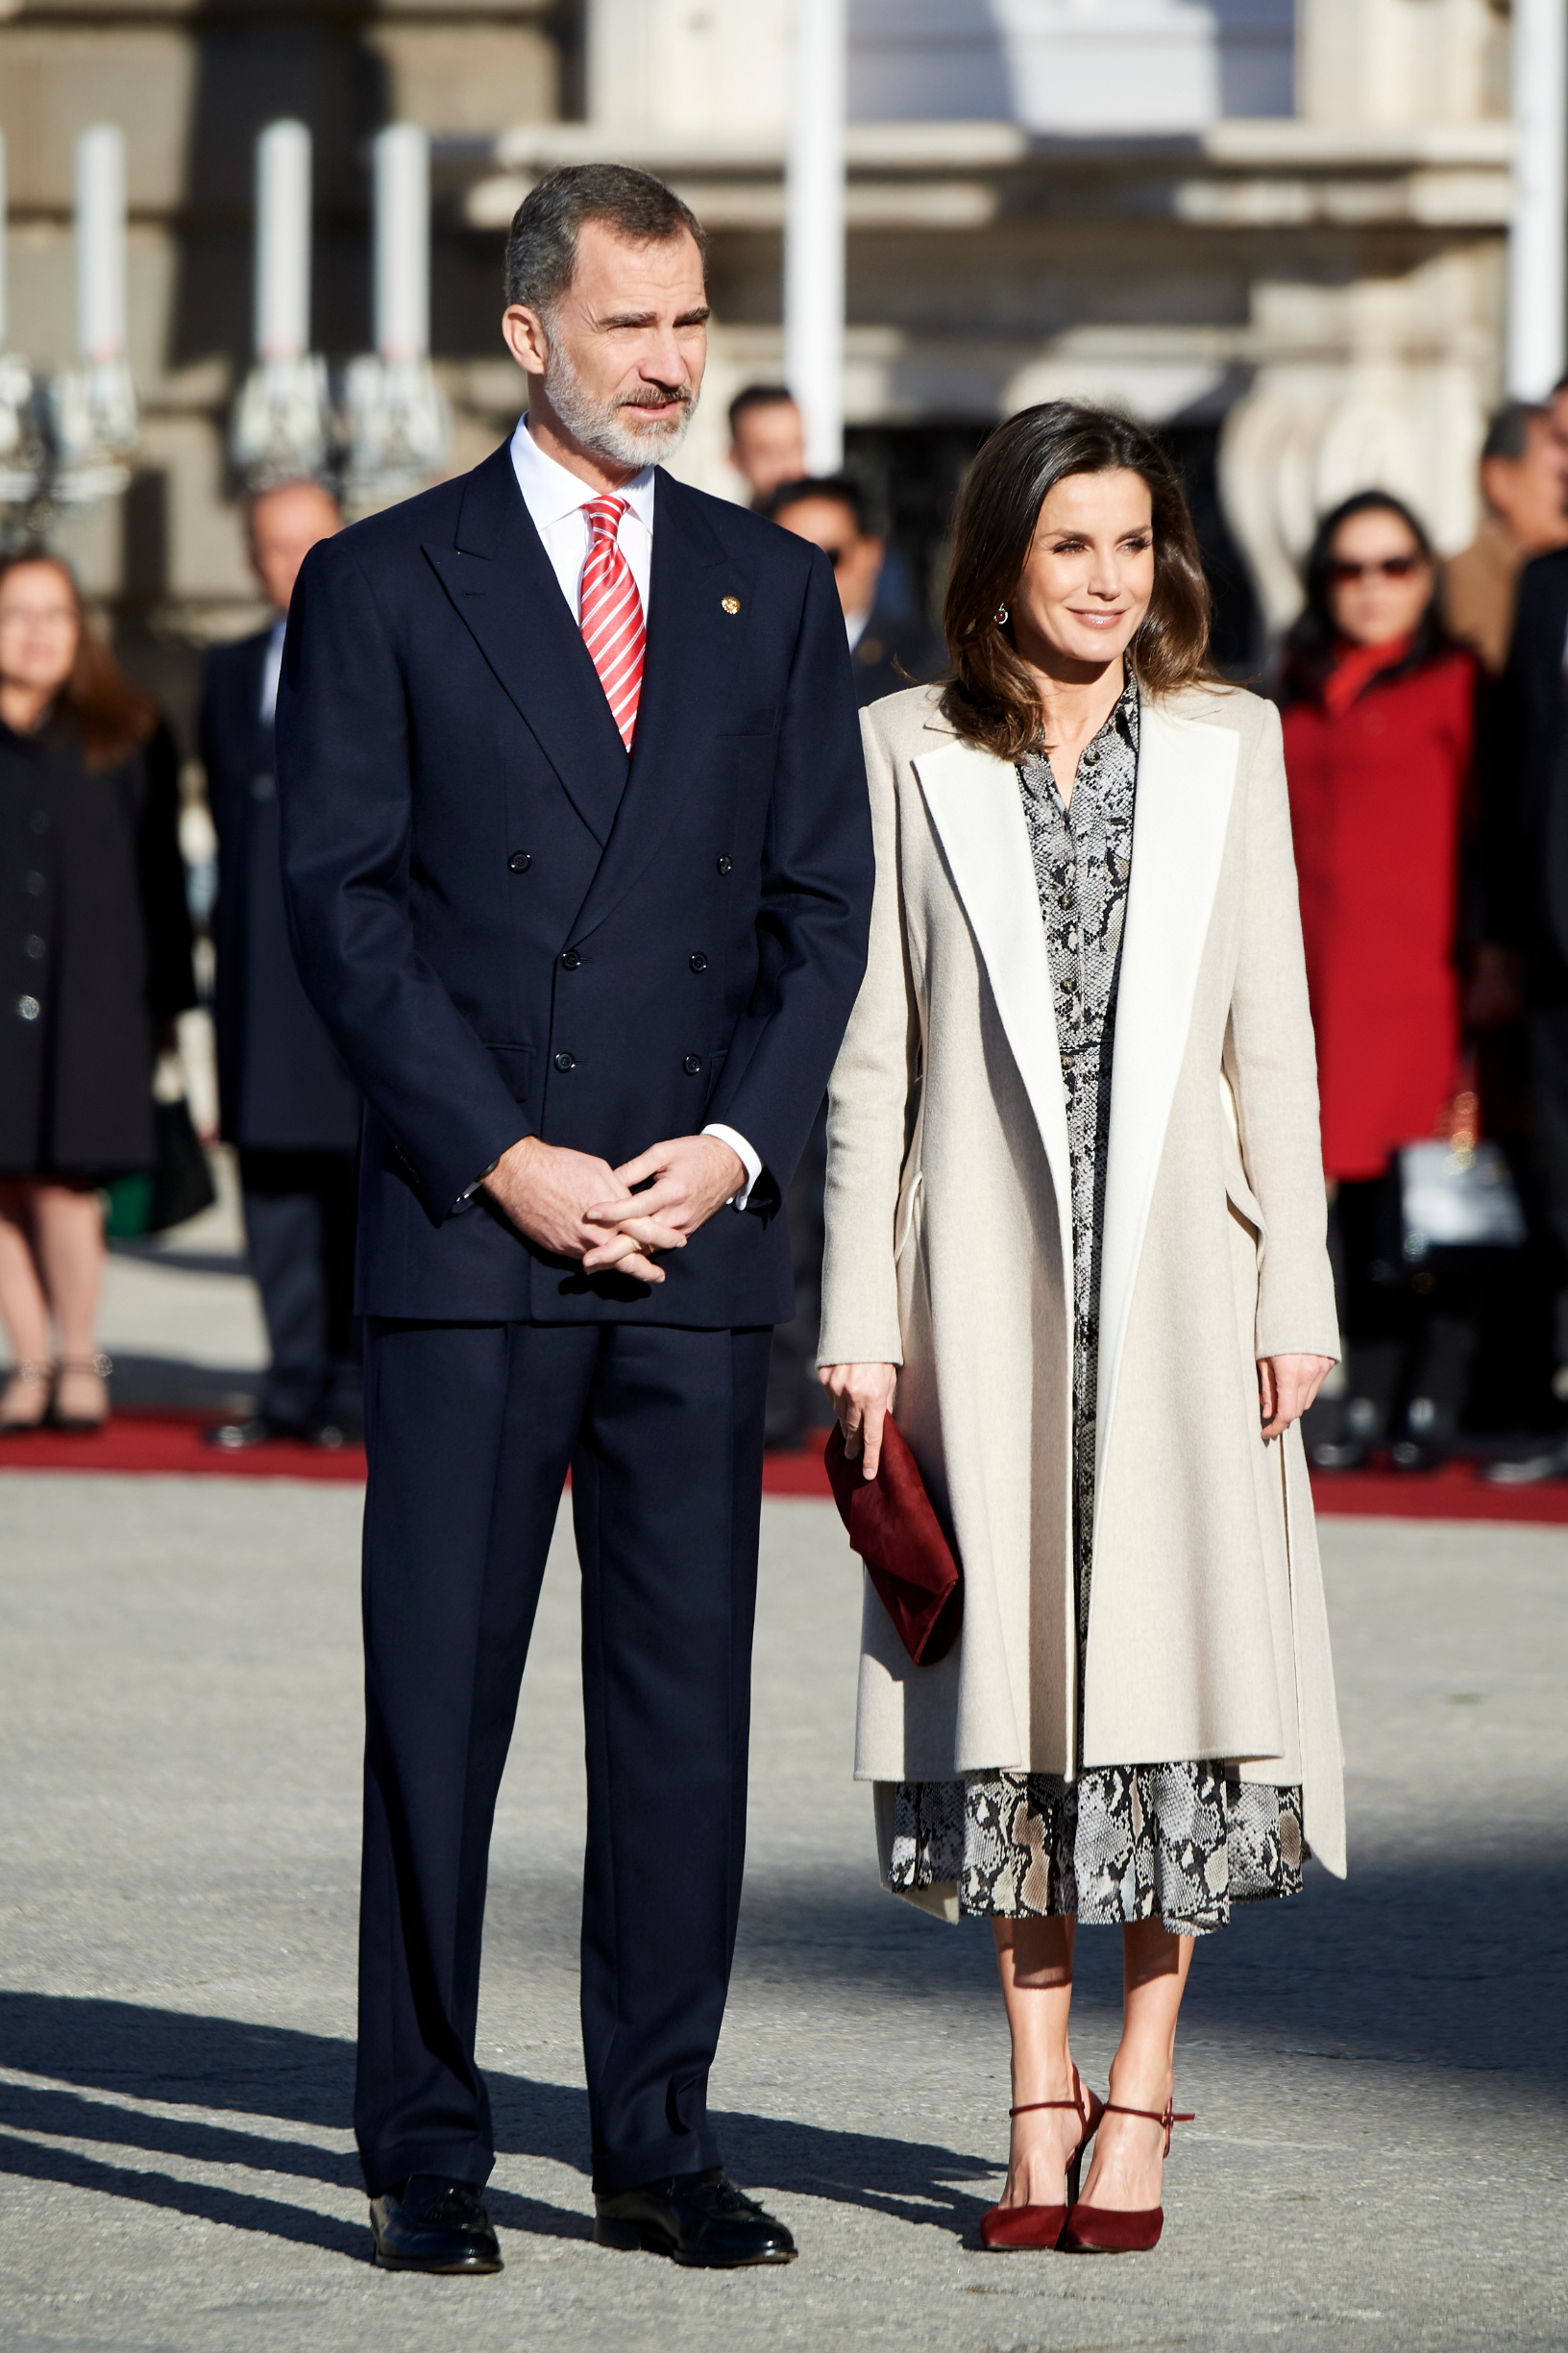 MADRID, SPAIN - FEBRUARY 27: King Felipe VI of Spain and Queen Letizia of Spain receive Peruvian President Martin Alberto Vizcarra  at the Royal Palace on February 27, 2019 in Madrid, Spain. (Photo by Carlos Alvarez/Getty Images)